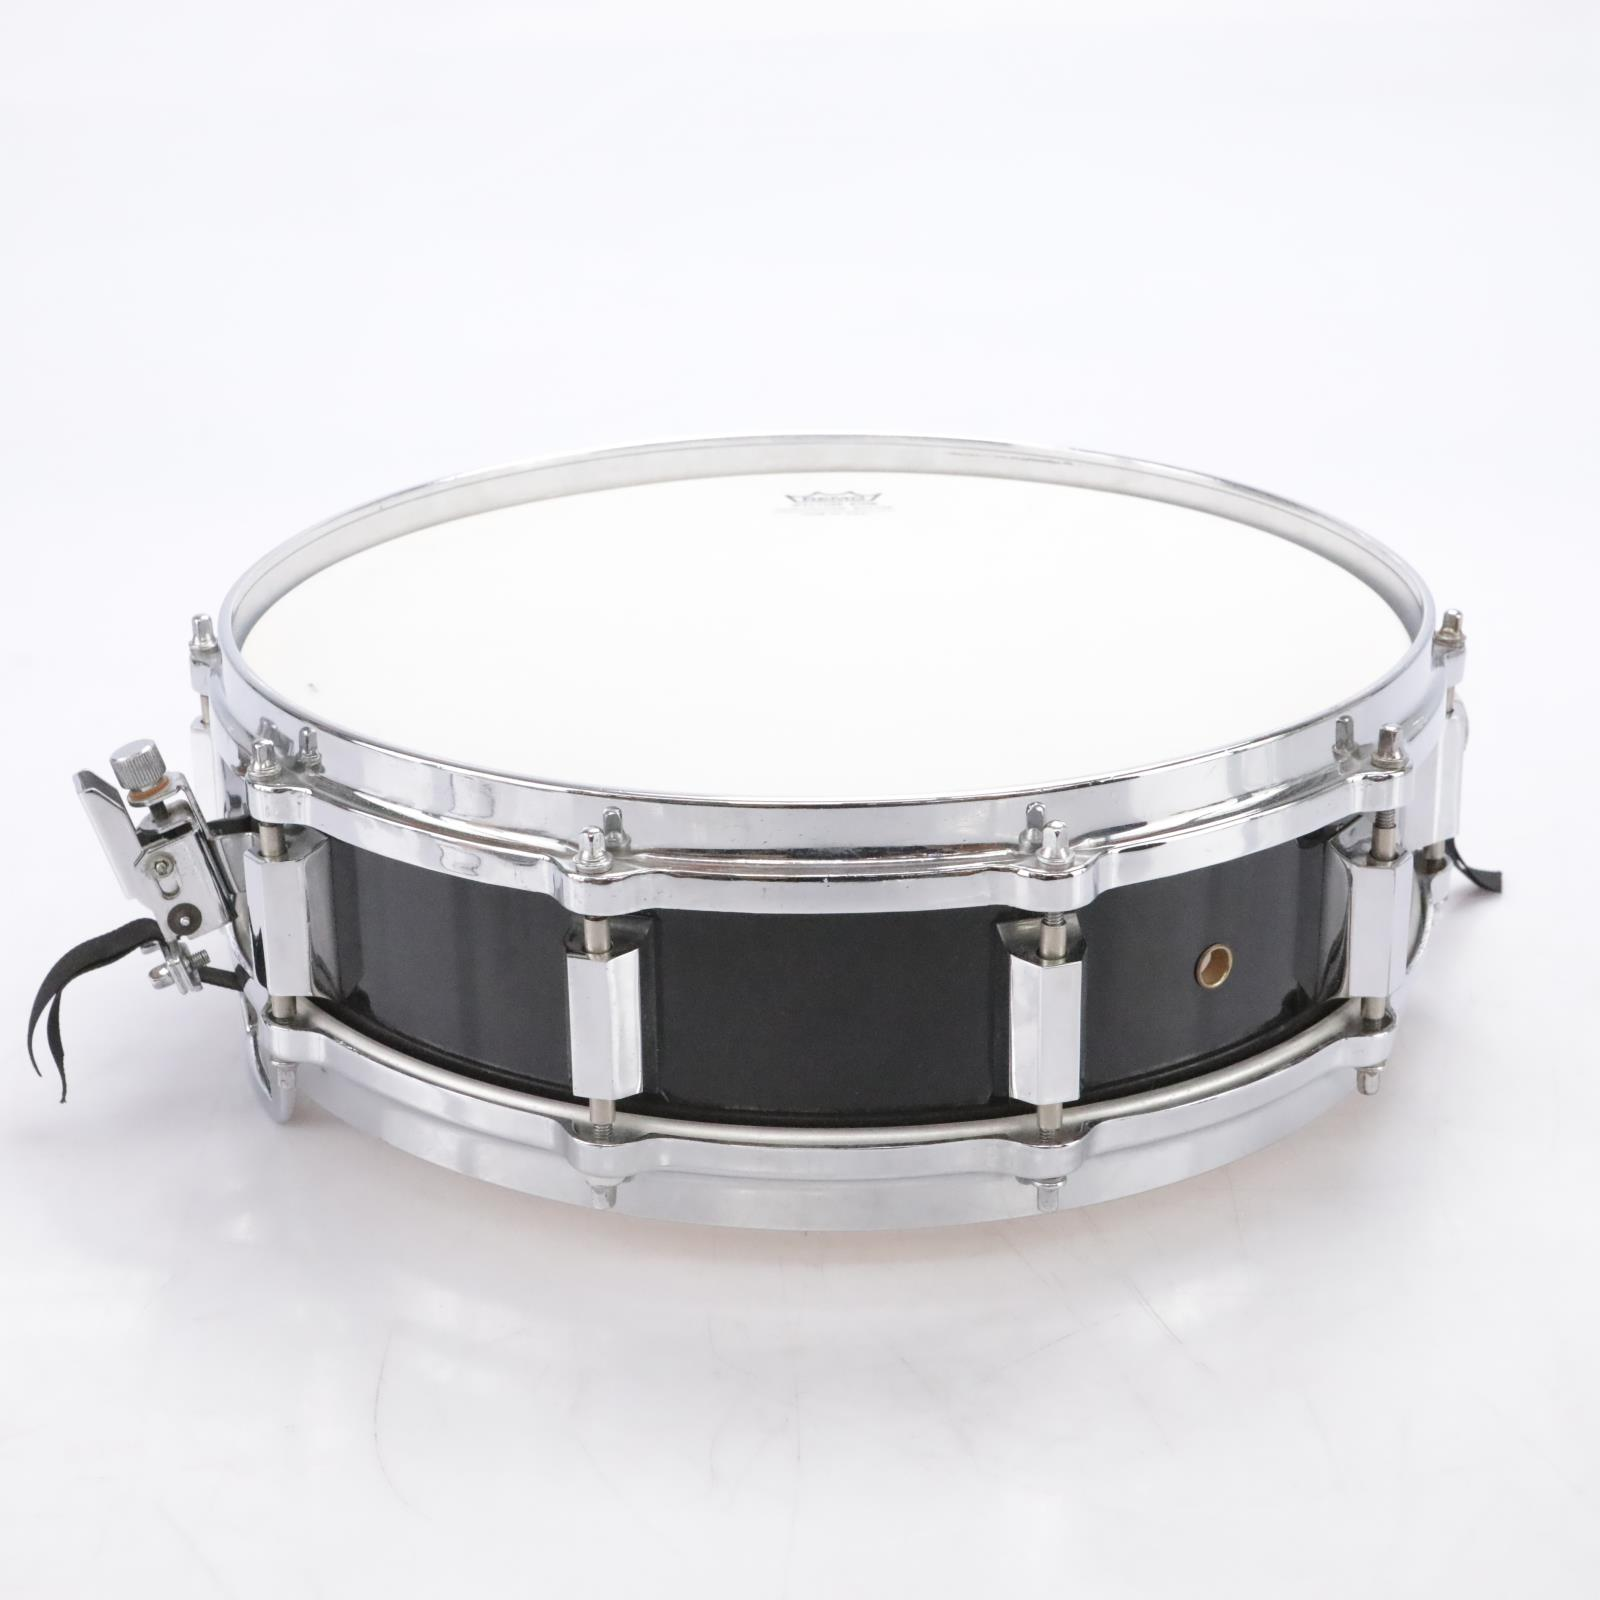 """1991 Drum Doctors Custom 14"""" x 4"""" Snare Drum Made for Chad Smith RHCP #44113"""